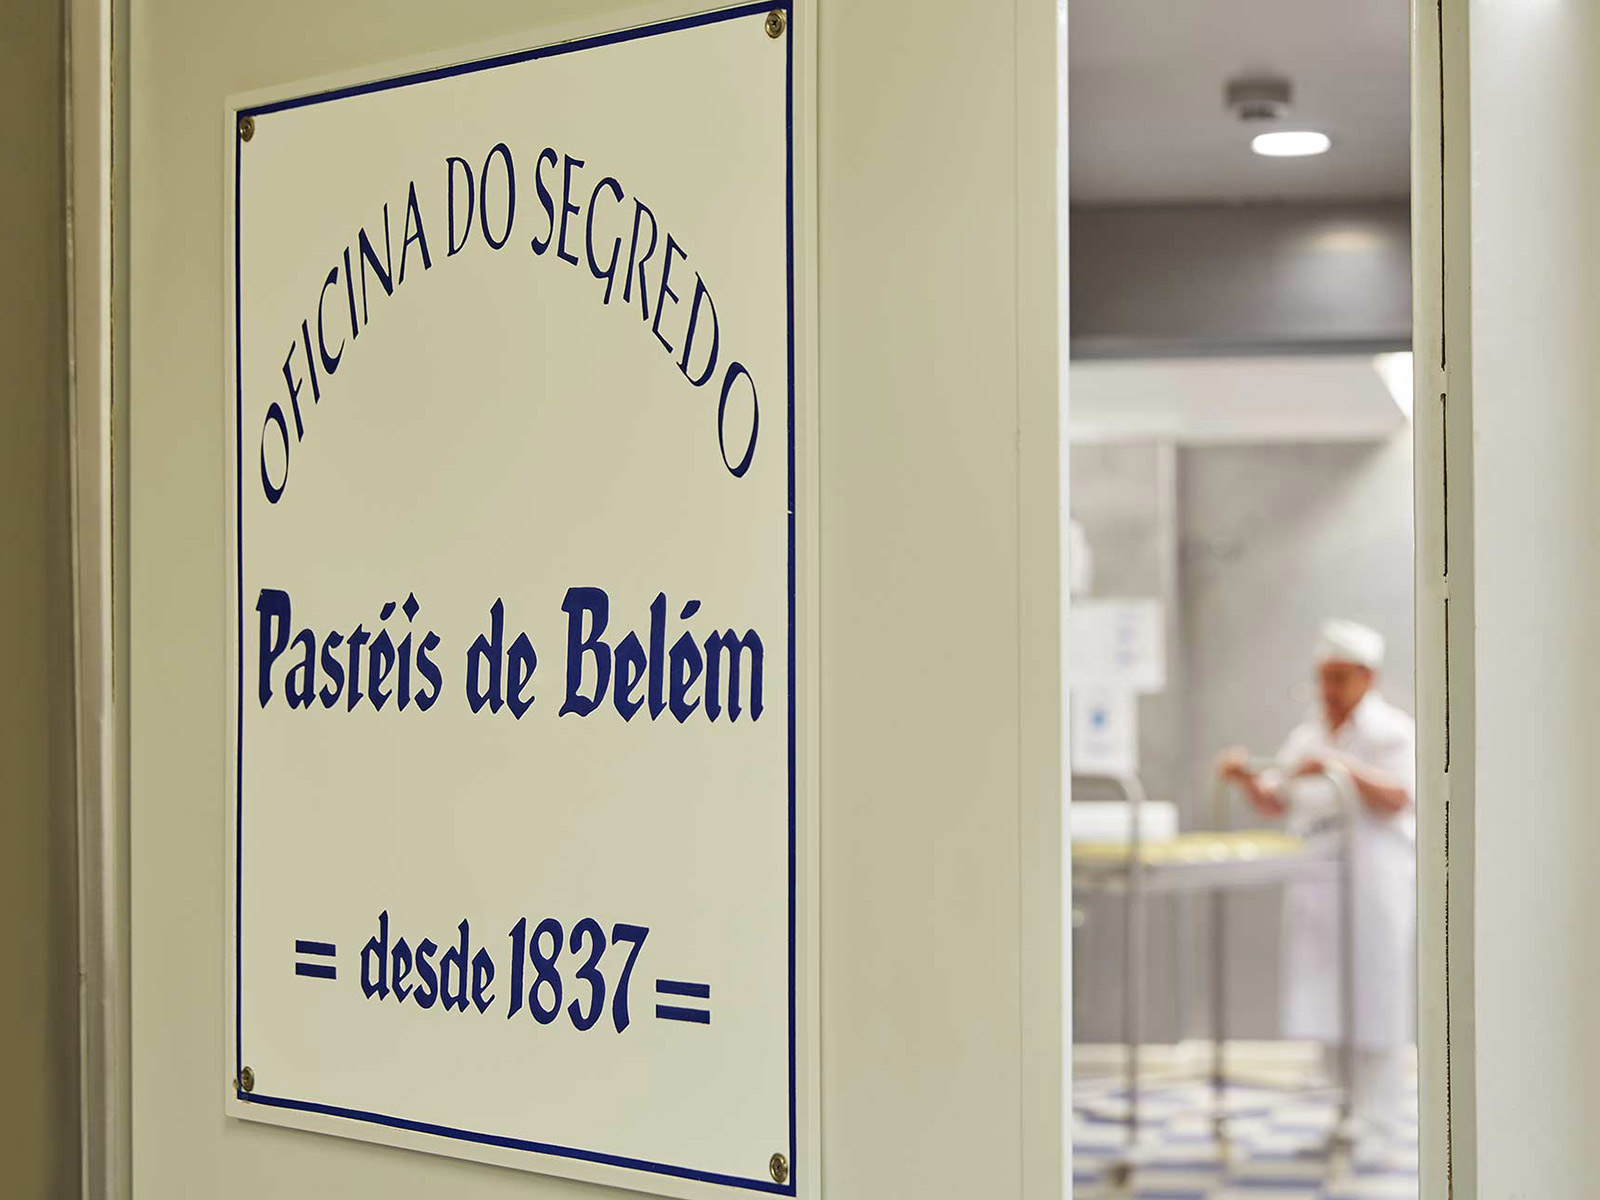 Pastais de Belem, ecco l'oficina do segredo